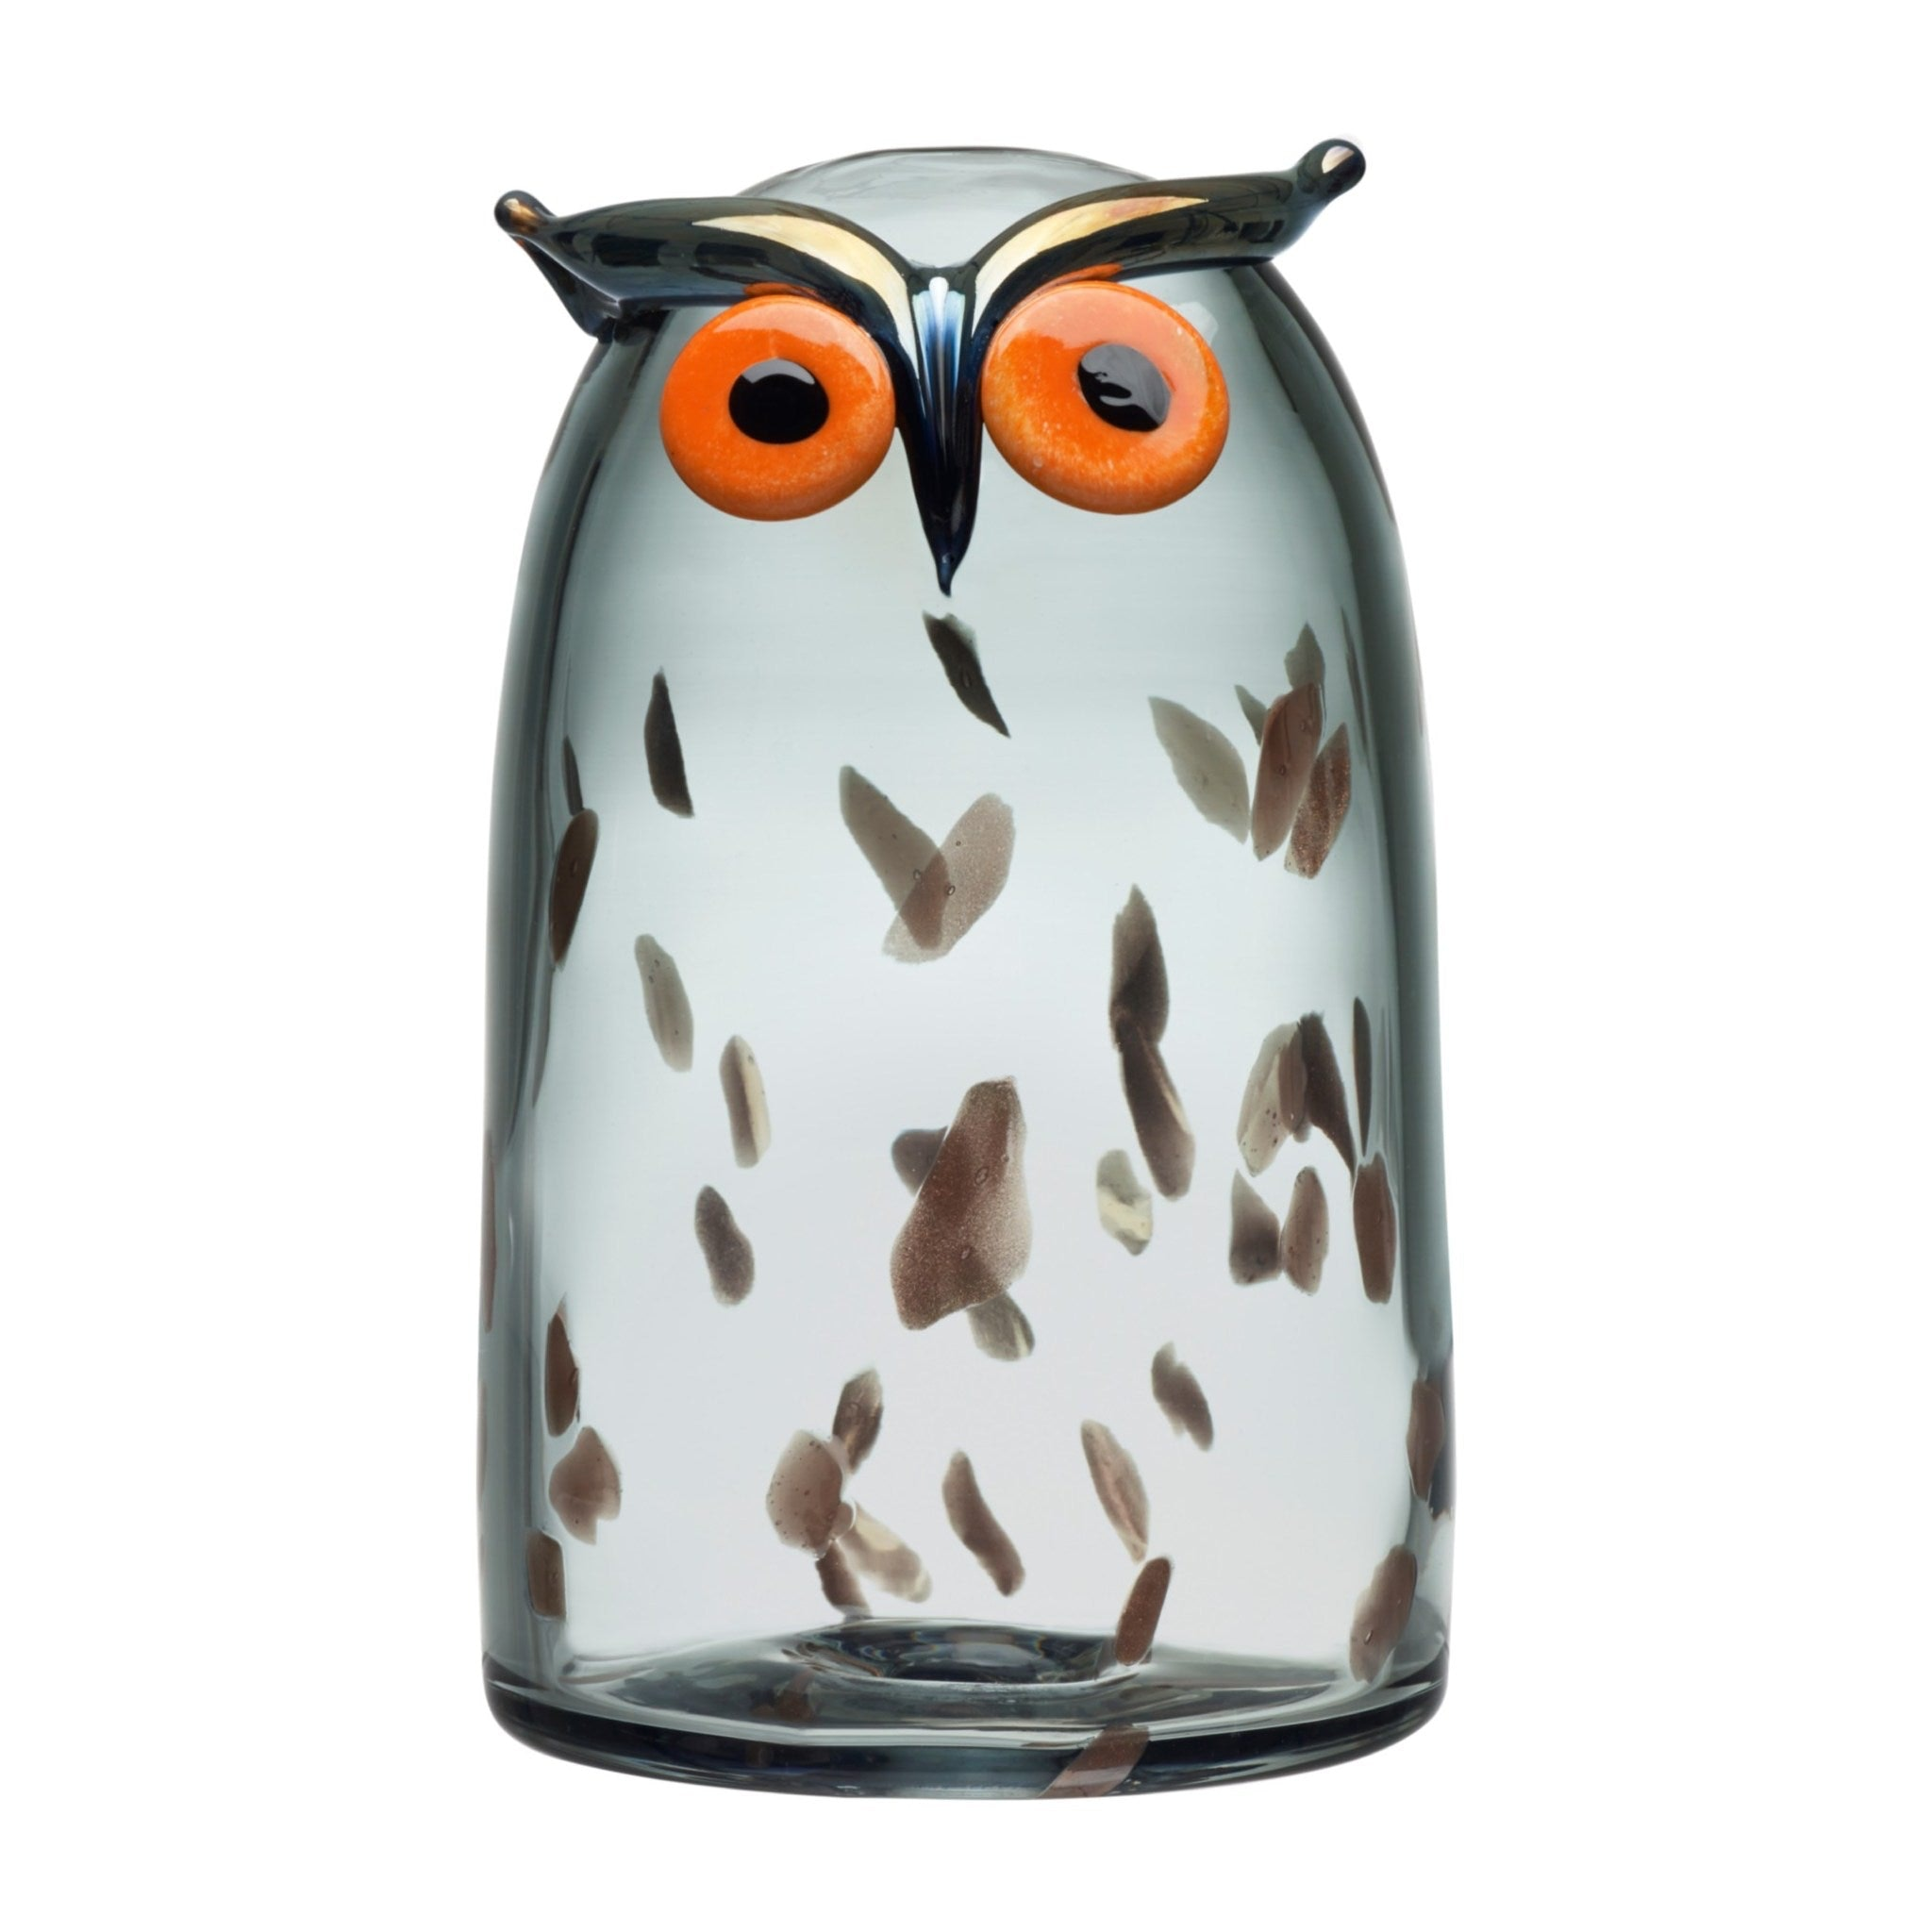 Long-Eared Owl by Iittala